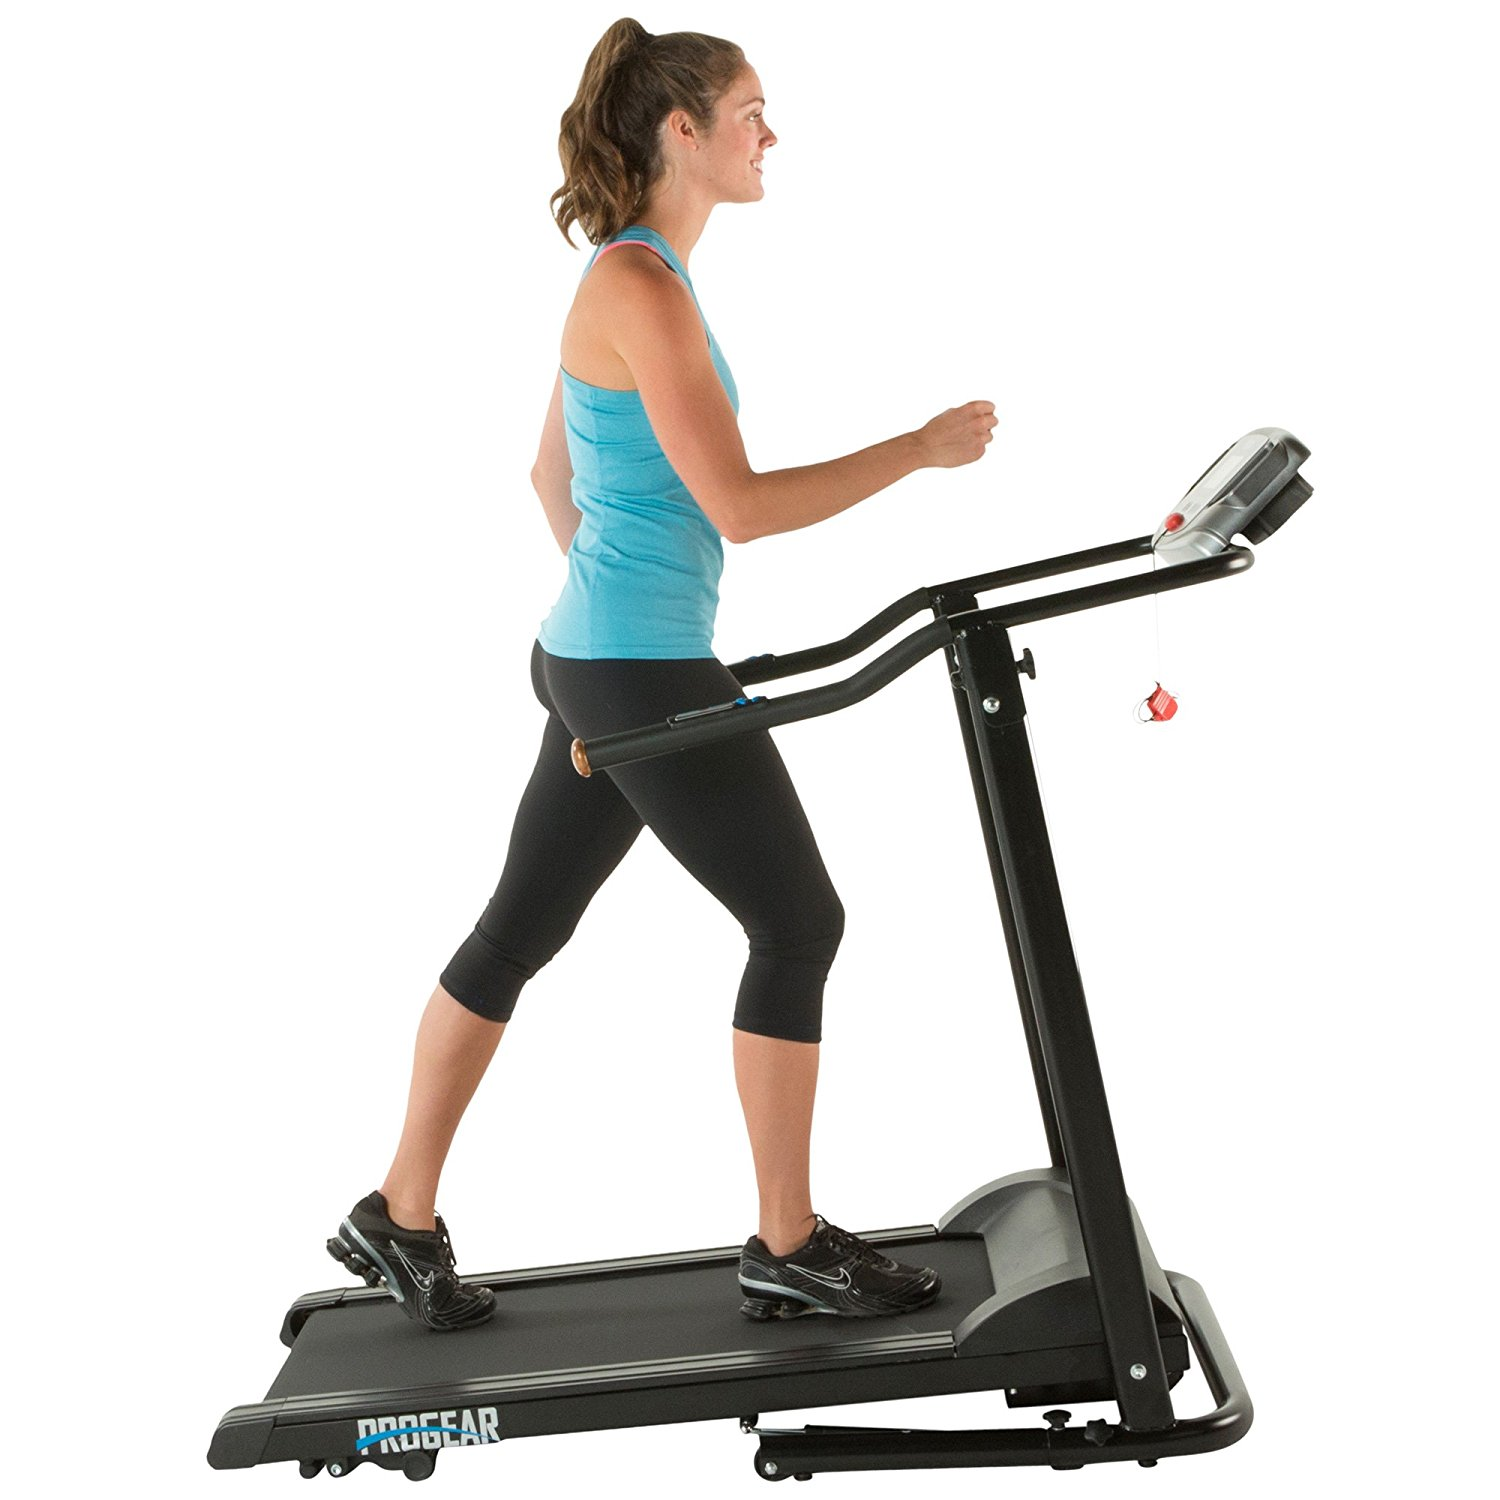 ProGear HCXL 4000 Ultimate High Capacity Extra Wide Walking and Jogging Electric Treadmill Review